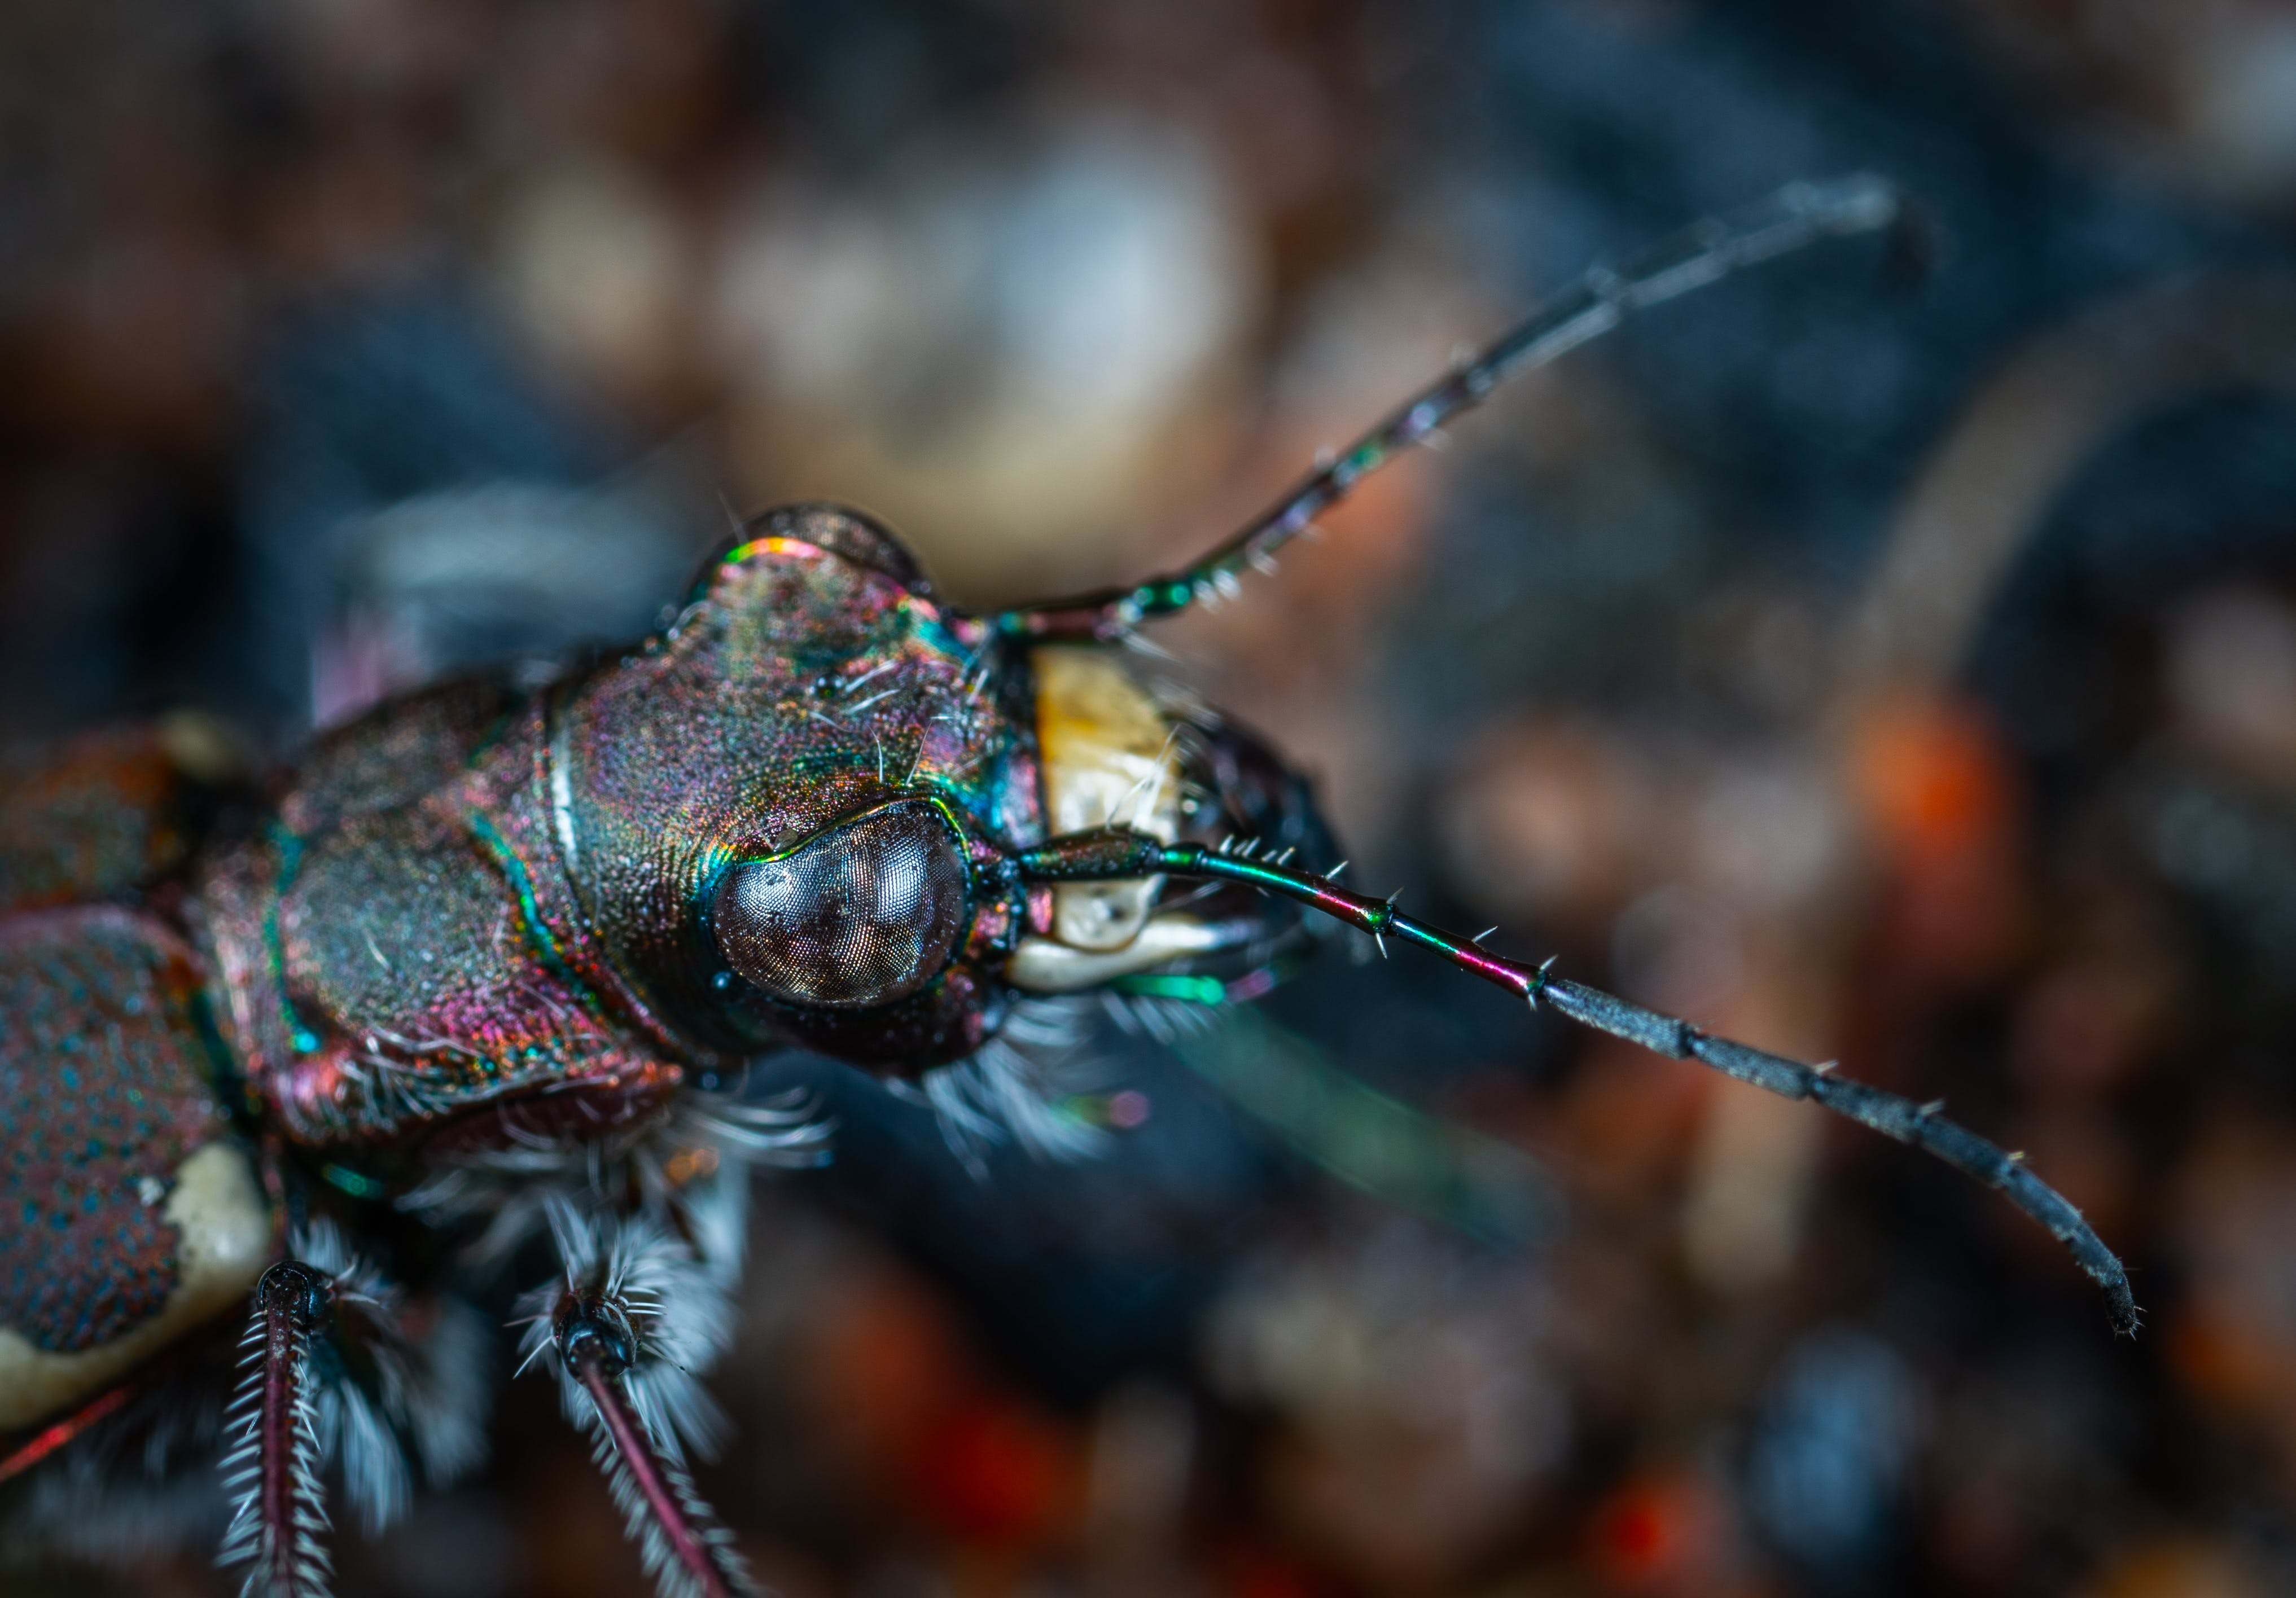 Shallow Focus Photography of Black Insect